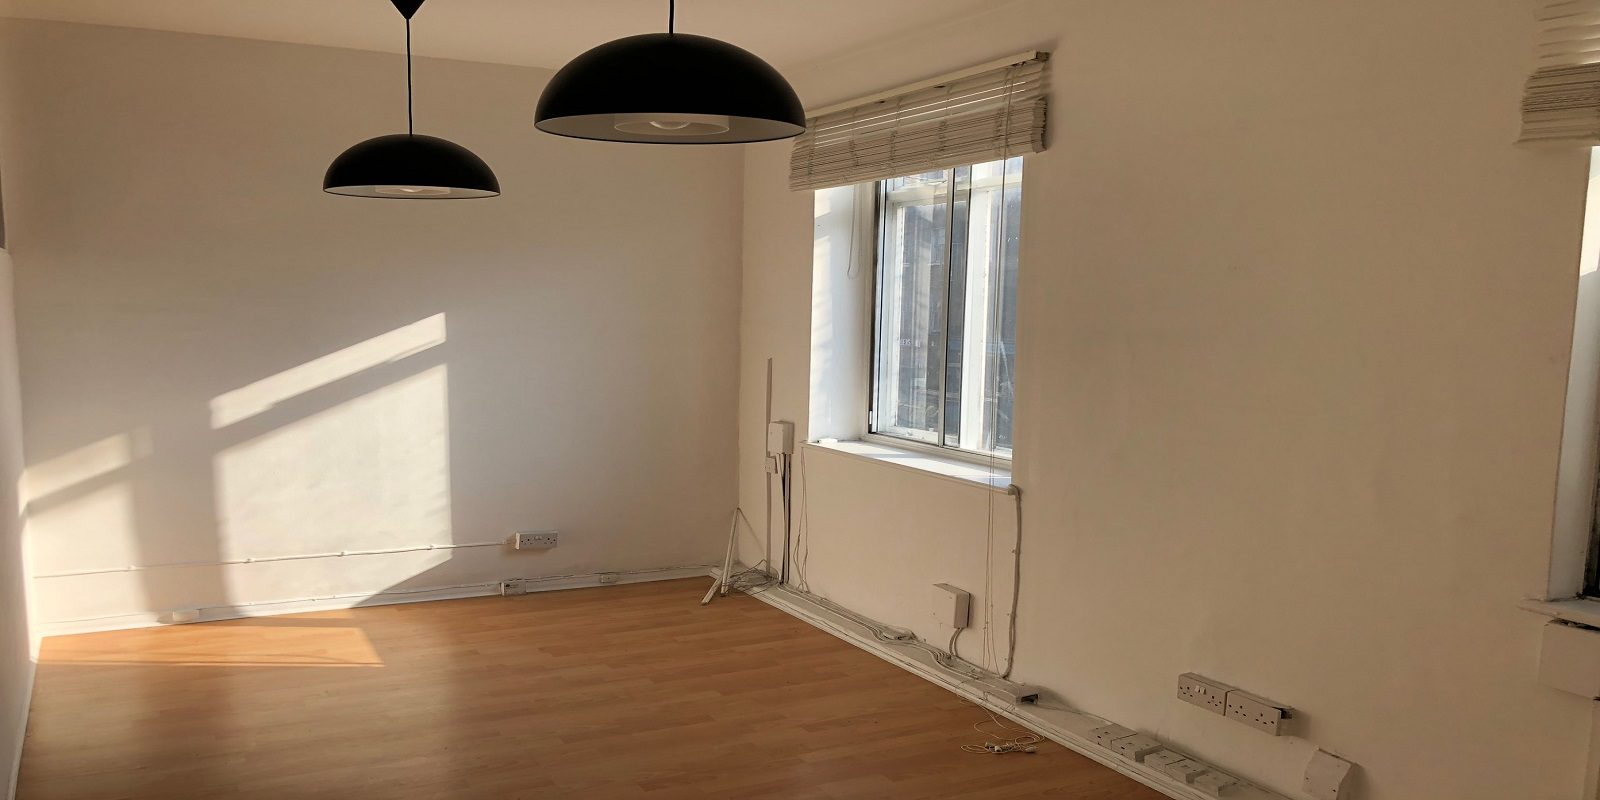 OFFICE TO LET IN CAMDEN